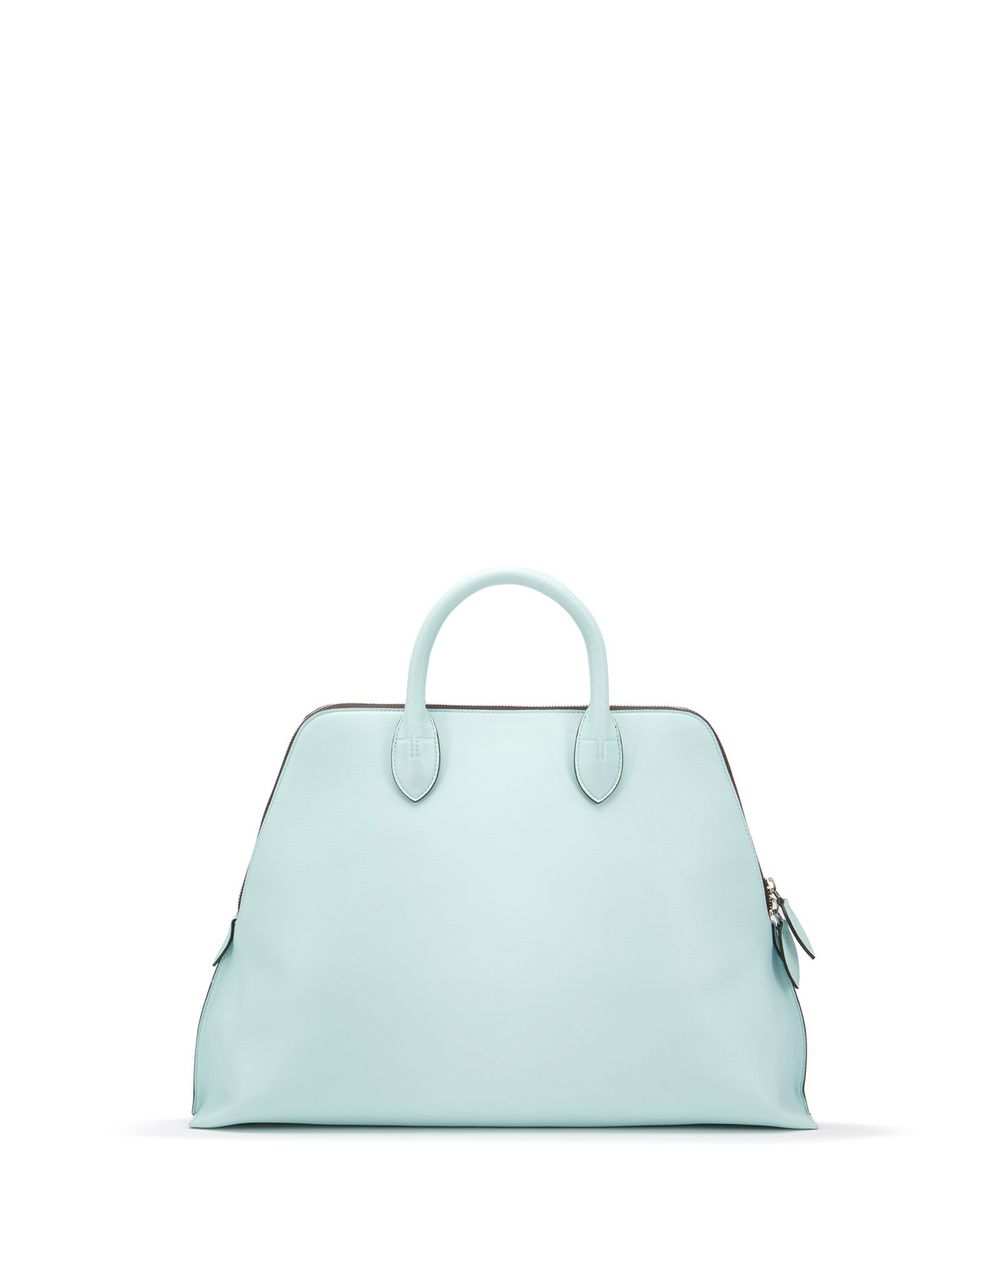 MAGOT BAG MEDIUM - Lanvin